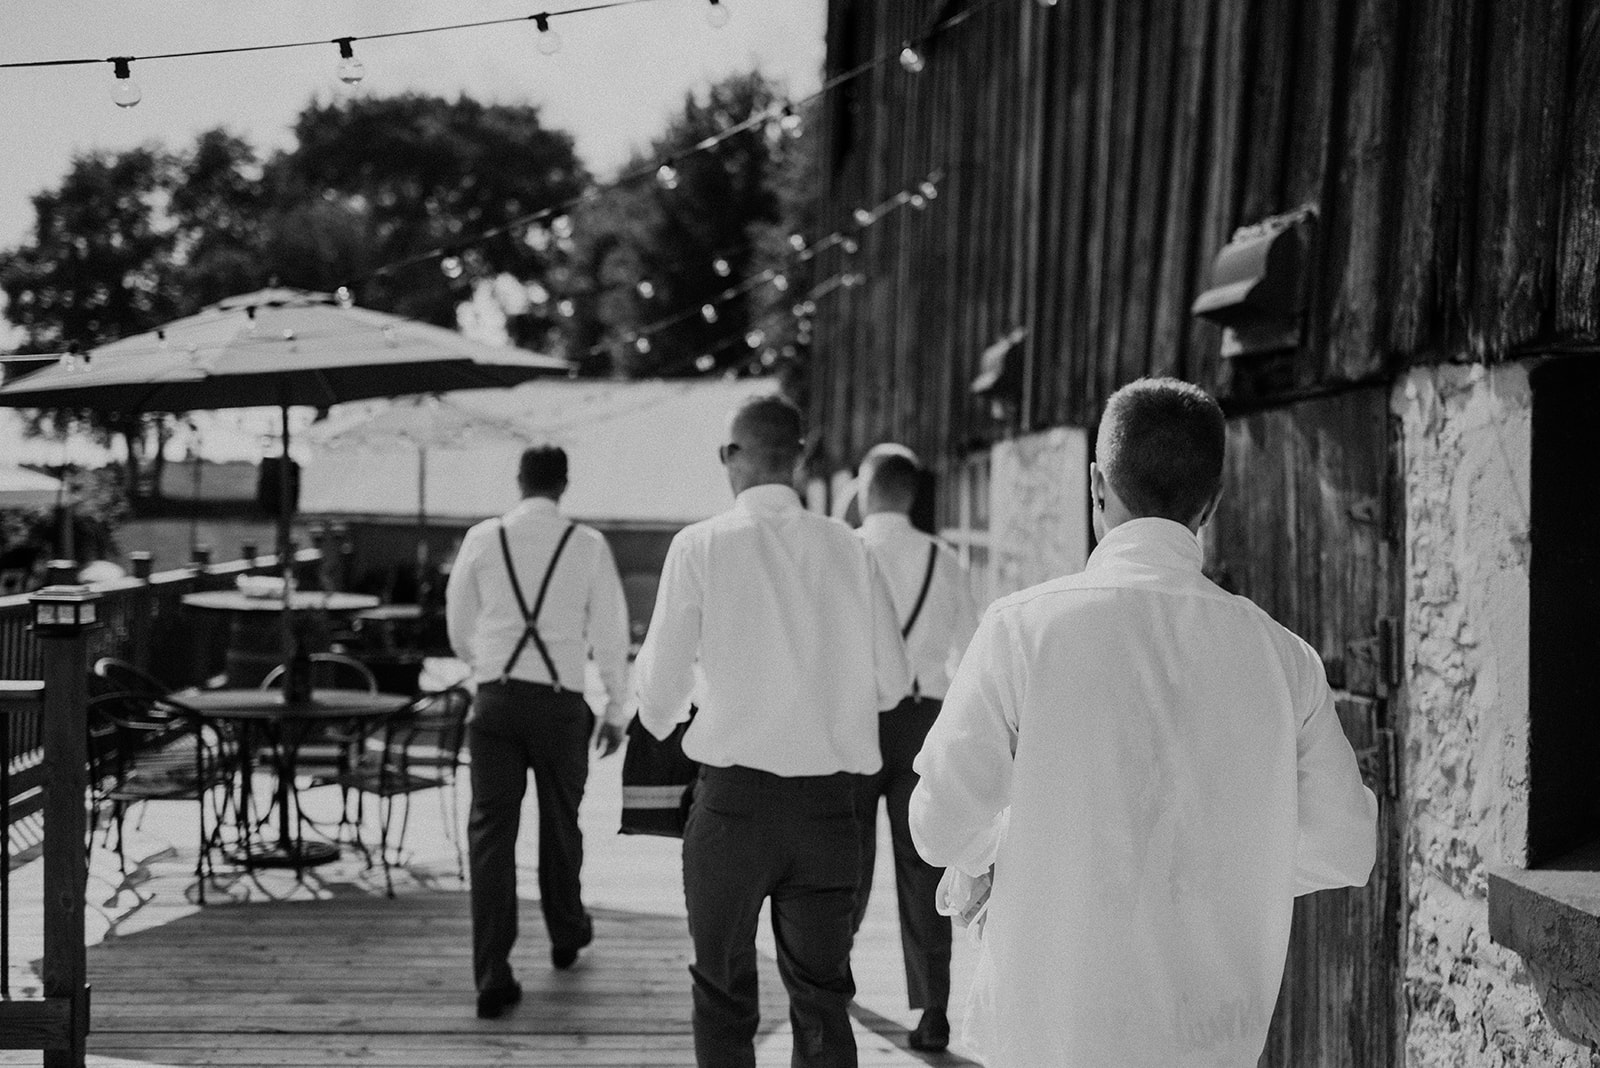 overthevineswisconsinwedding_0355.jpg